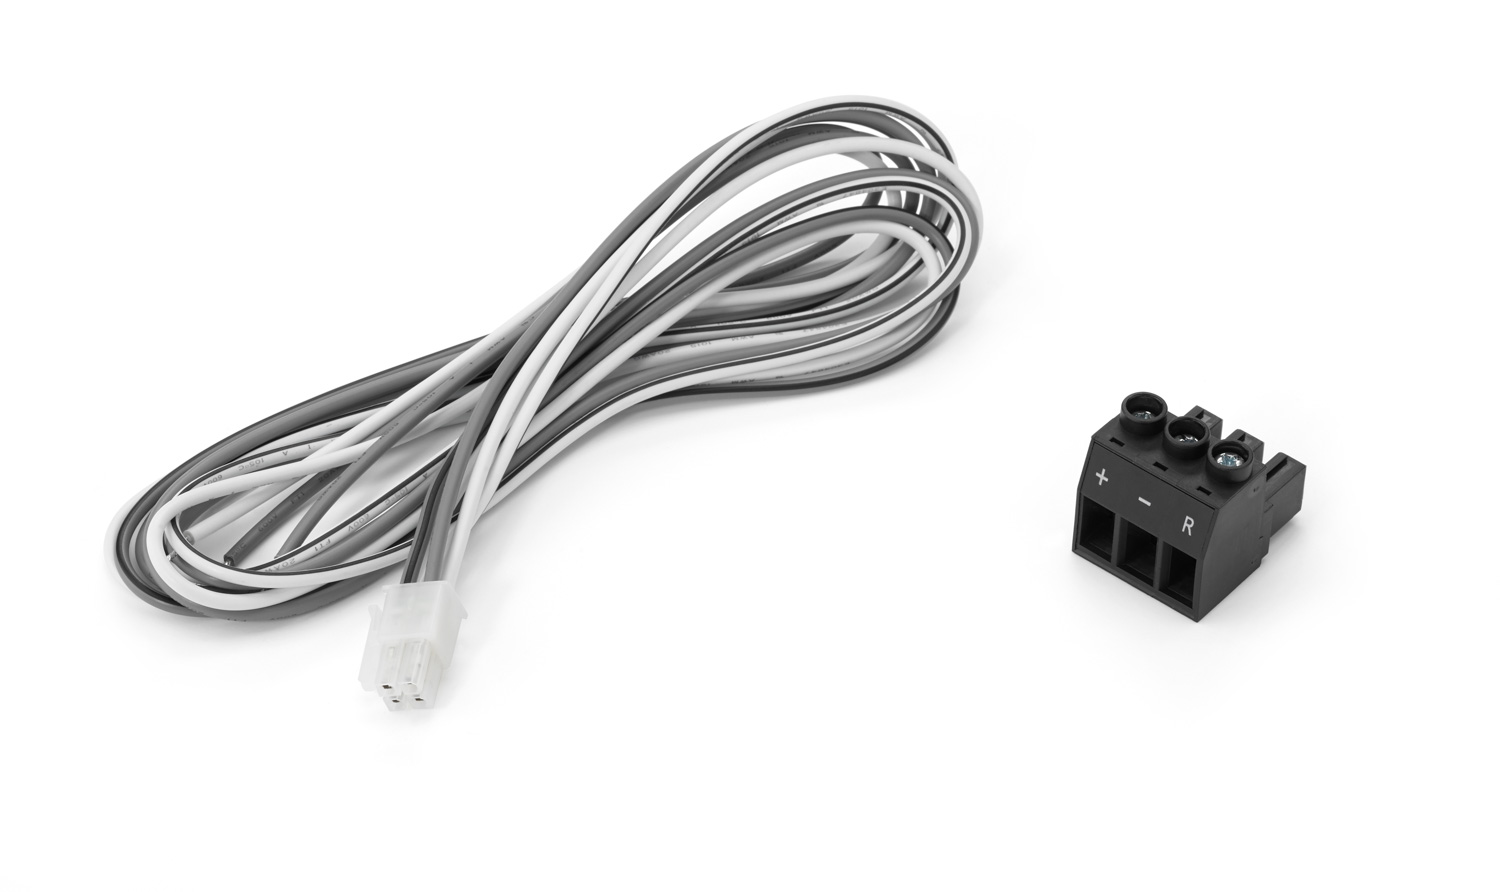 hight resolution of acp acs pp ca rp replacement speaker input wire harness and power plug for microsub and powerwedge